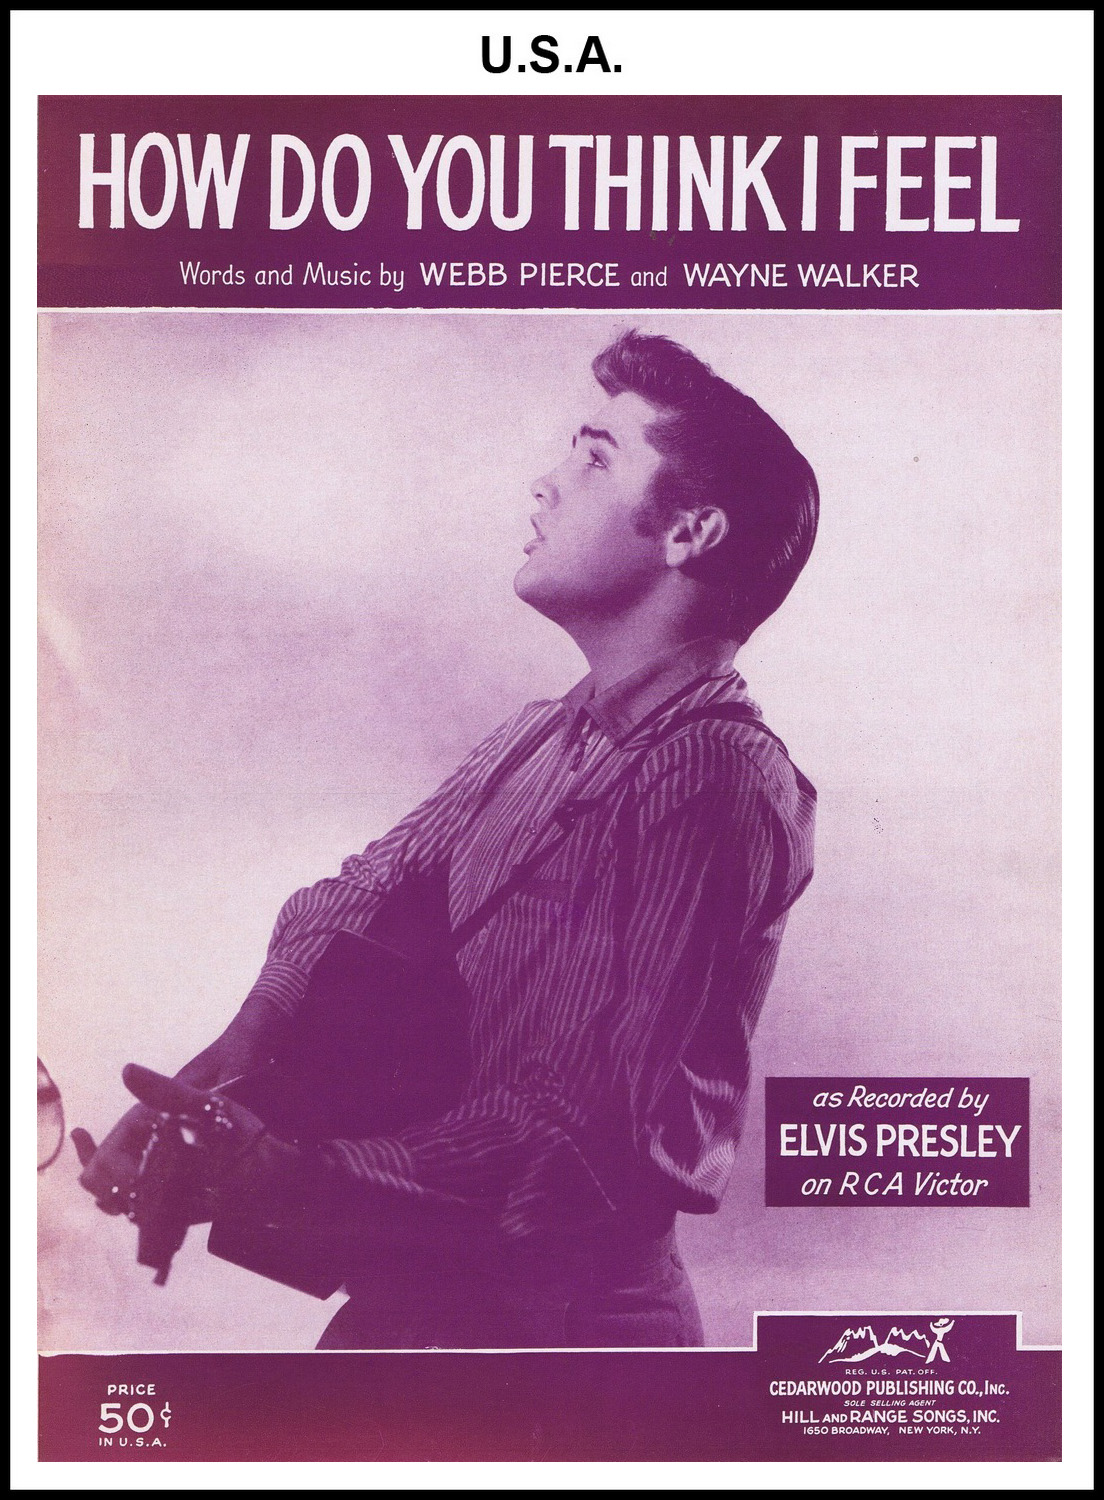 1956 - How Do You Think I Feel (USA 50c) (CHRIS GILES COLLECTION)